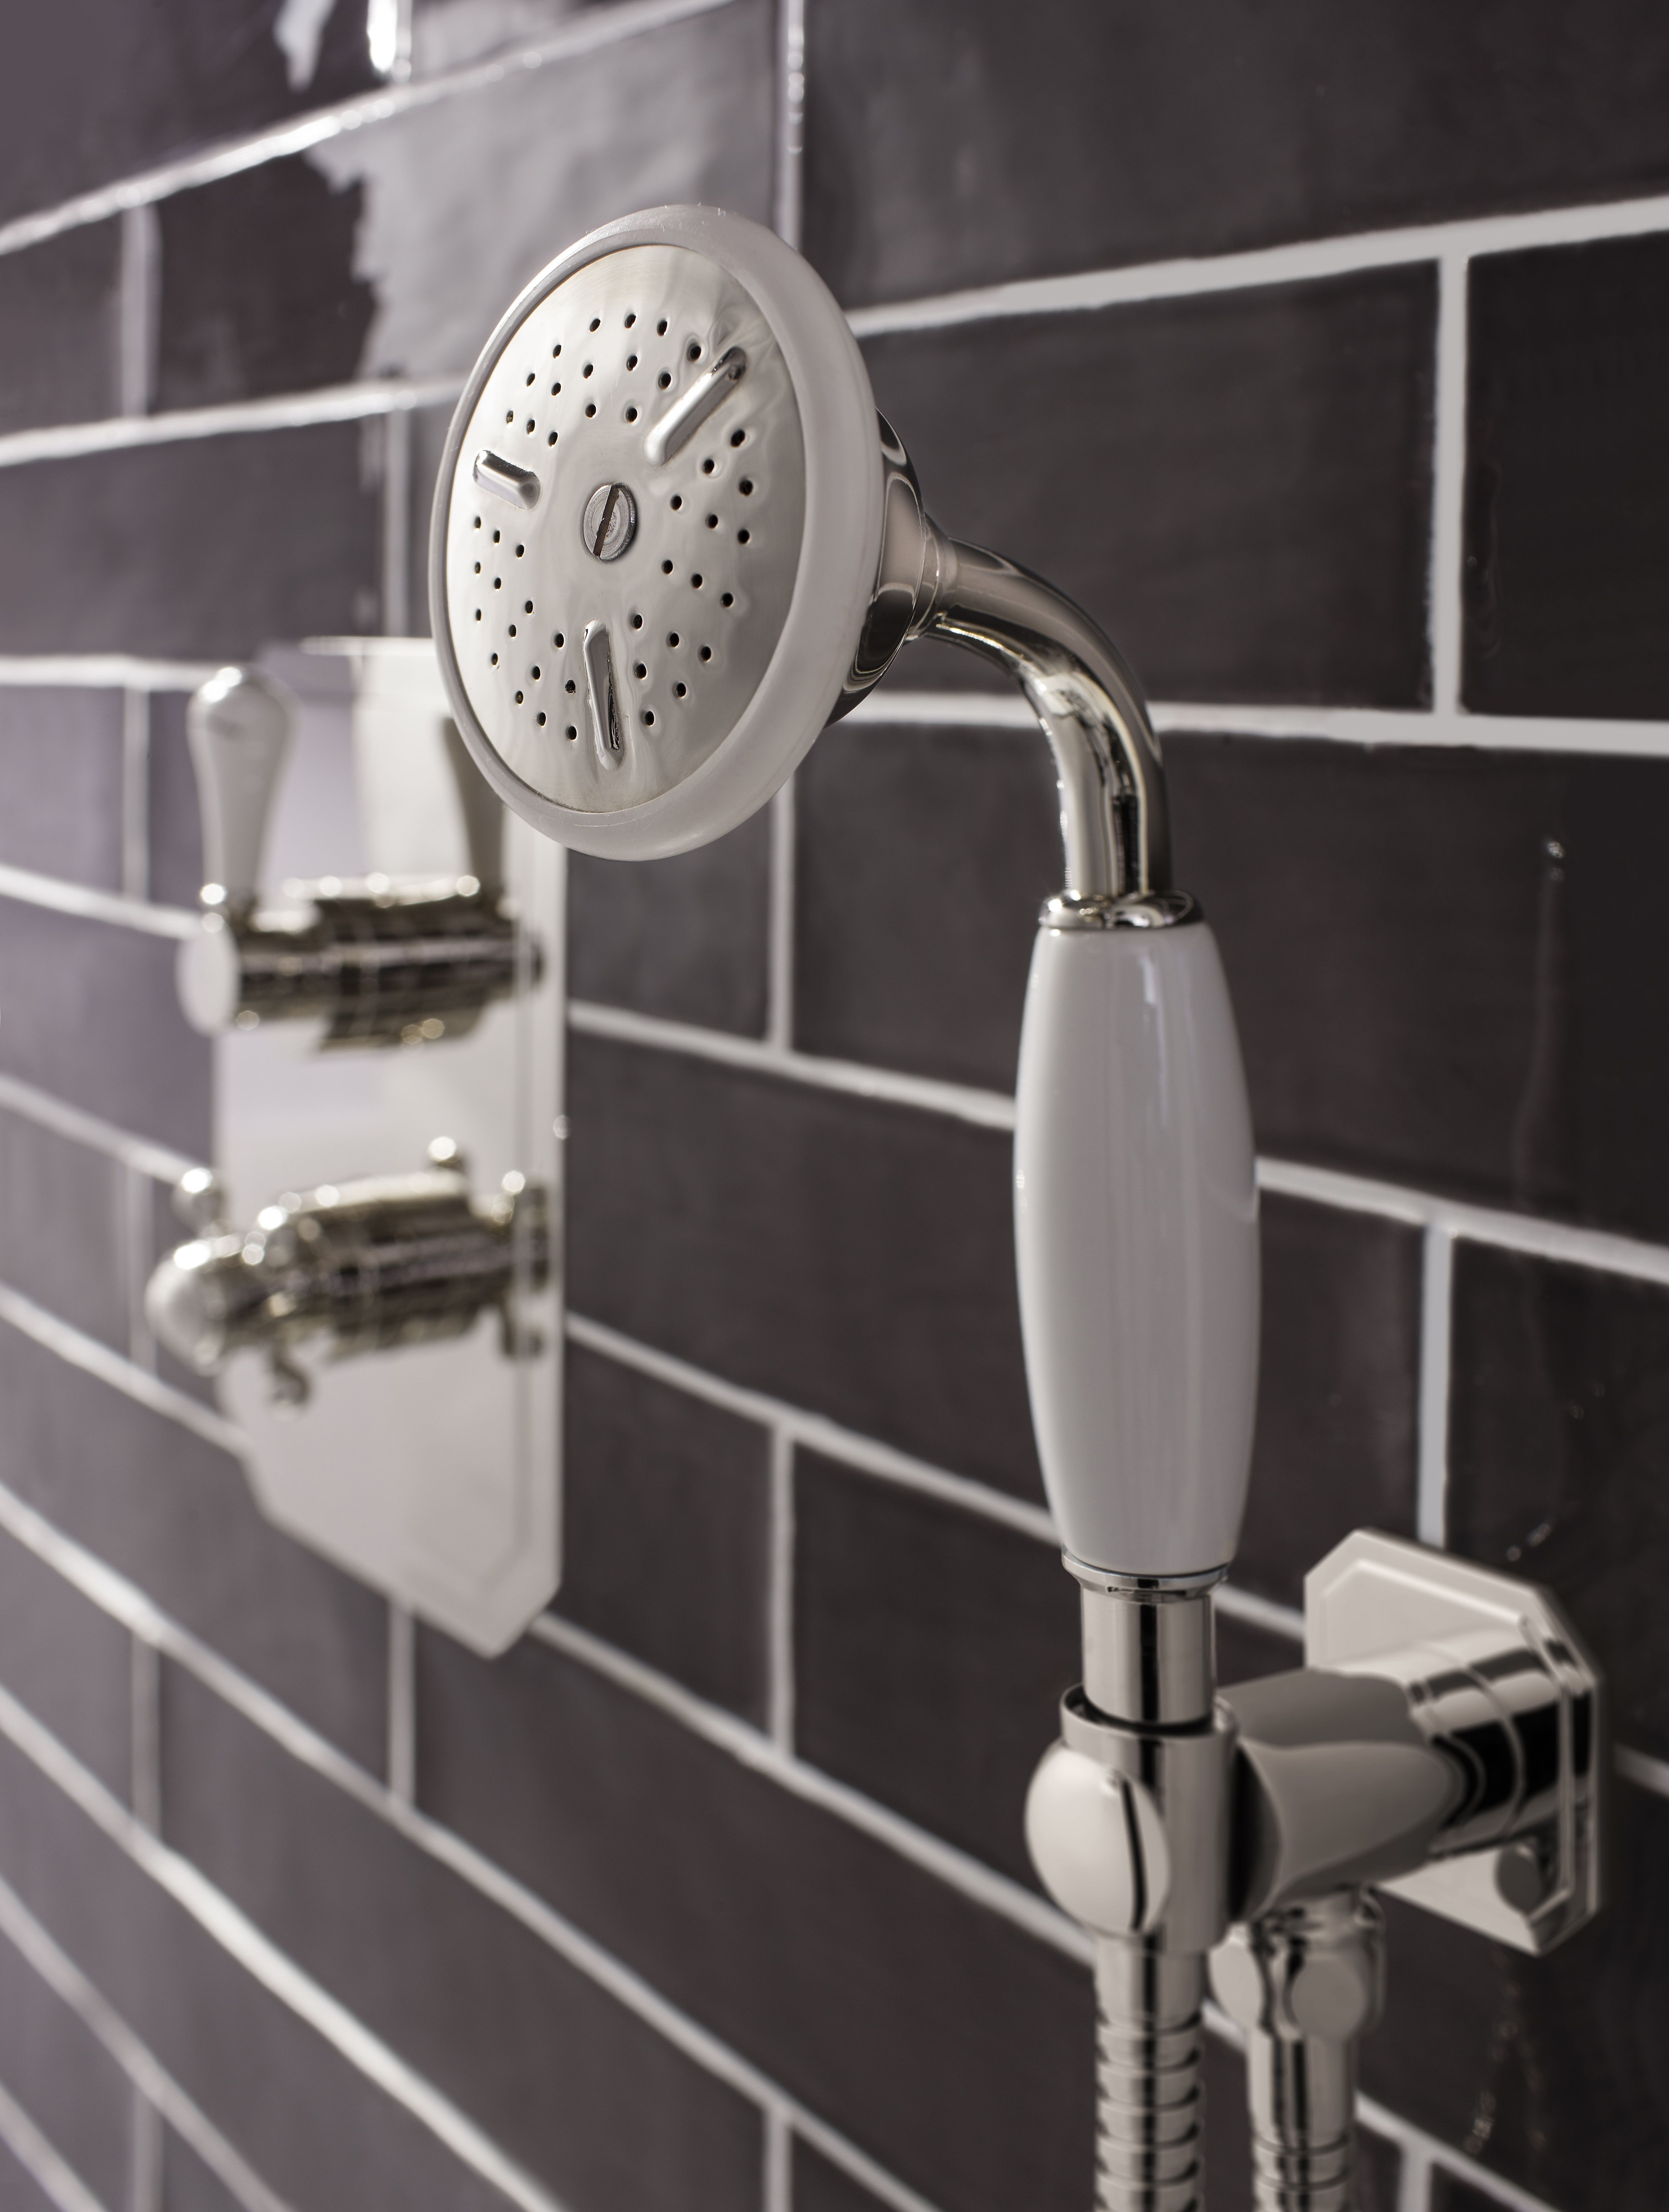 Pin by Crosswater UK on Traditional Charm! | Pinterest | Shower ...